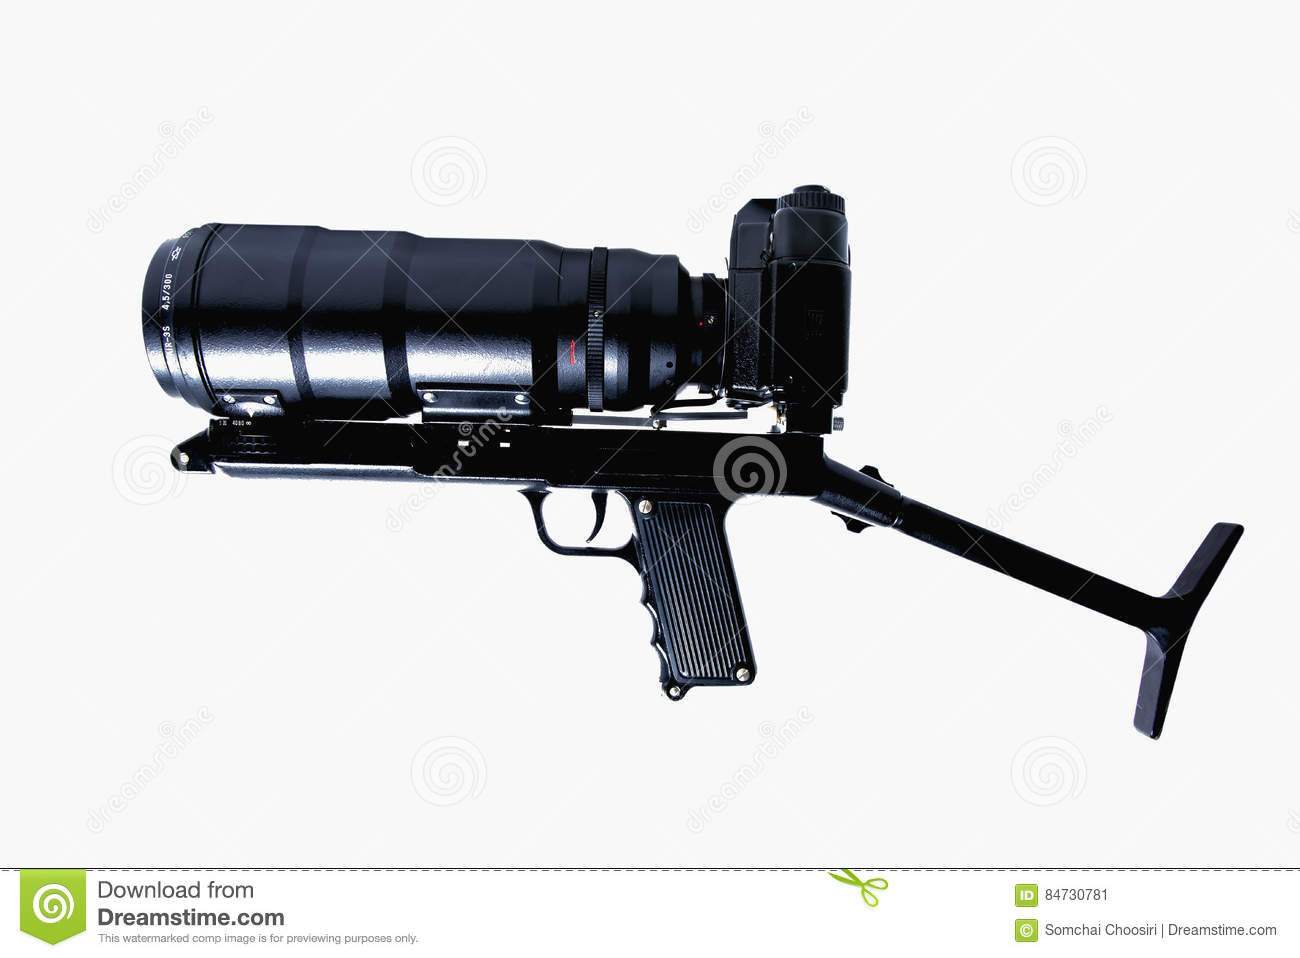 e0a31c376b The Camera Is Actually Held In The Same Manner As A Rifle Stock ...